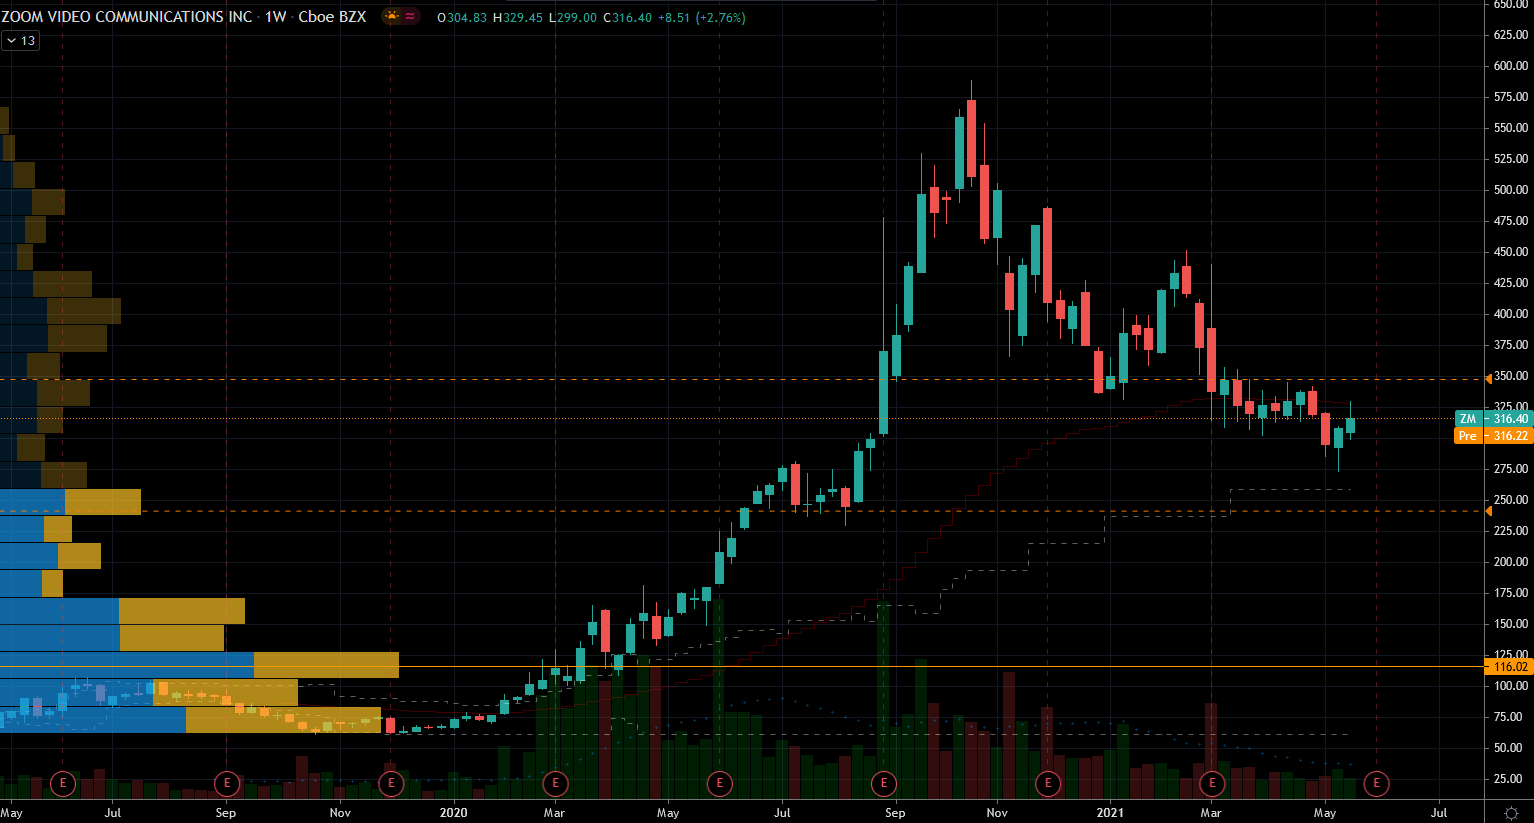 Pandemic Stocks: Zoom Video (ZM) Stock Chart Showing Potential Base